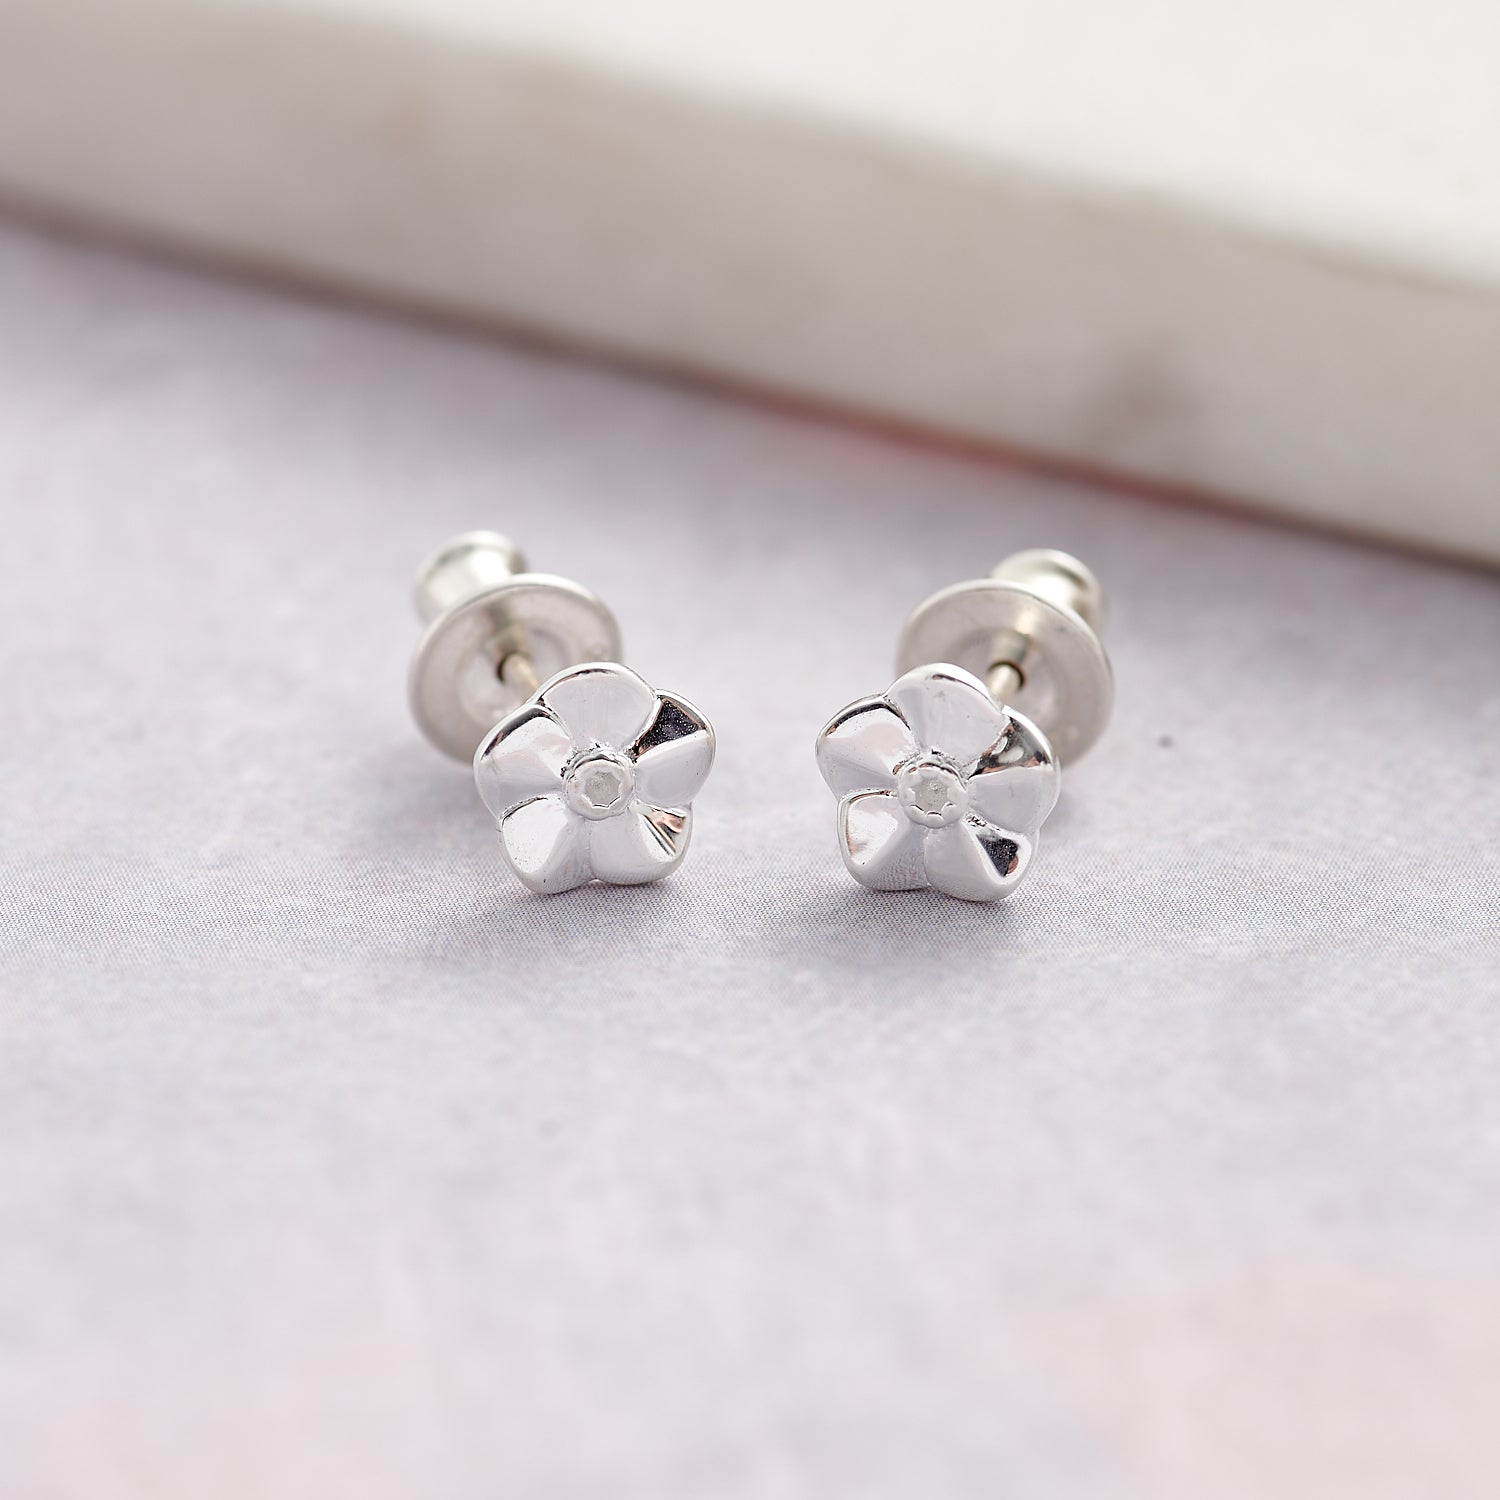 tiny silver forget me not flower stud earrings for women and girls scarlett jewellery brighton